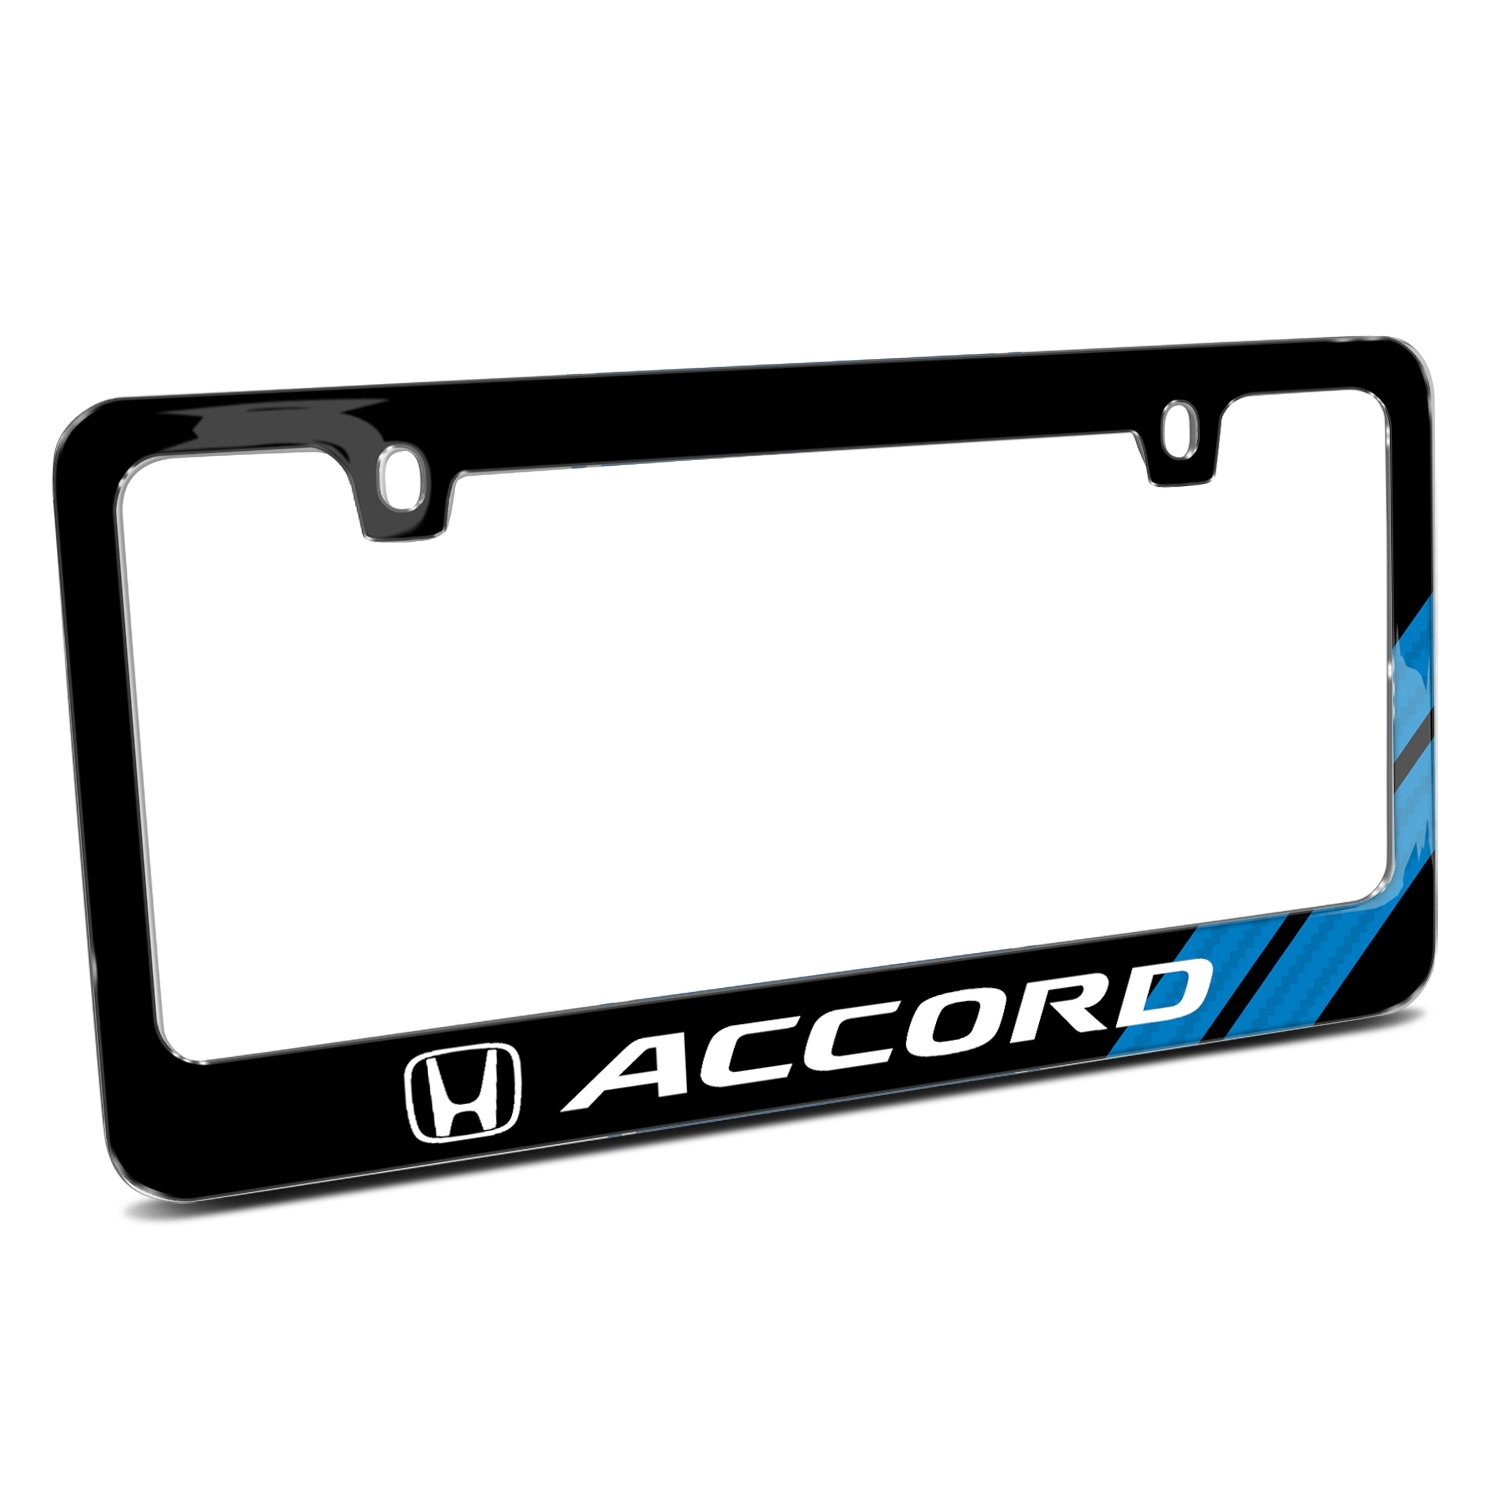 Honda Accord Blue Carbon Fiber Texture Stripe Black Metal License Plate Frame